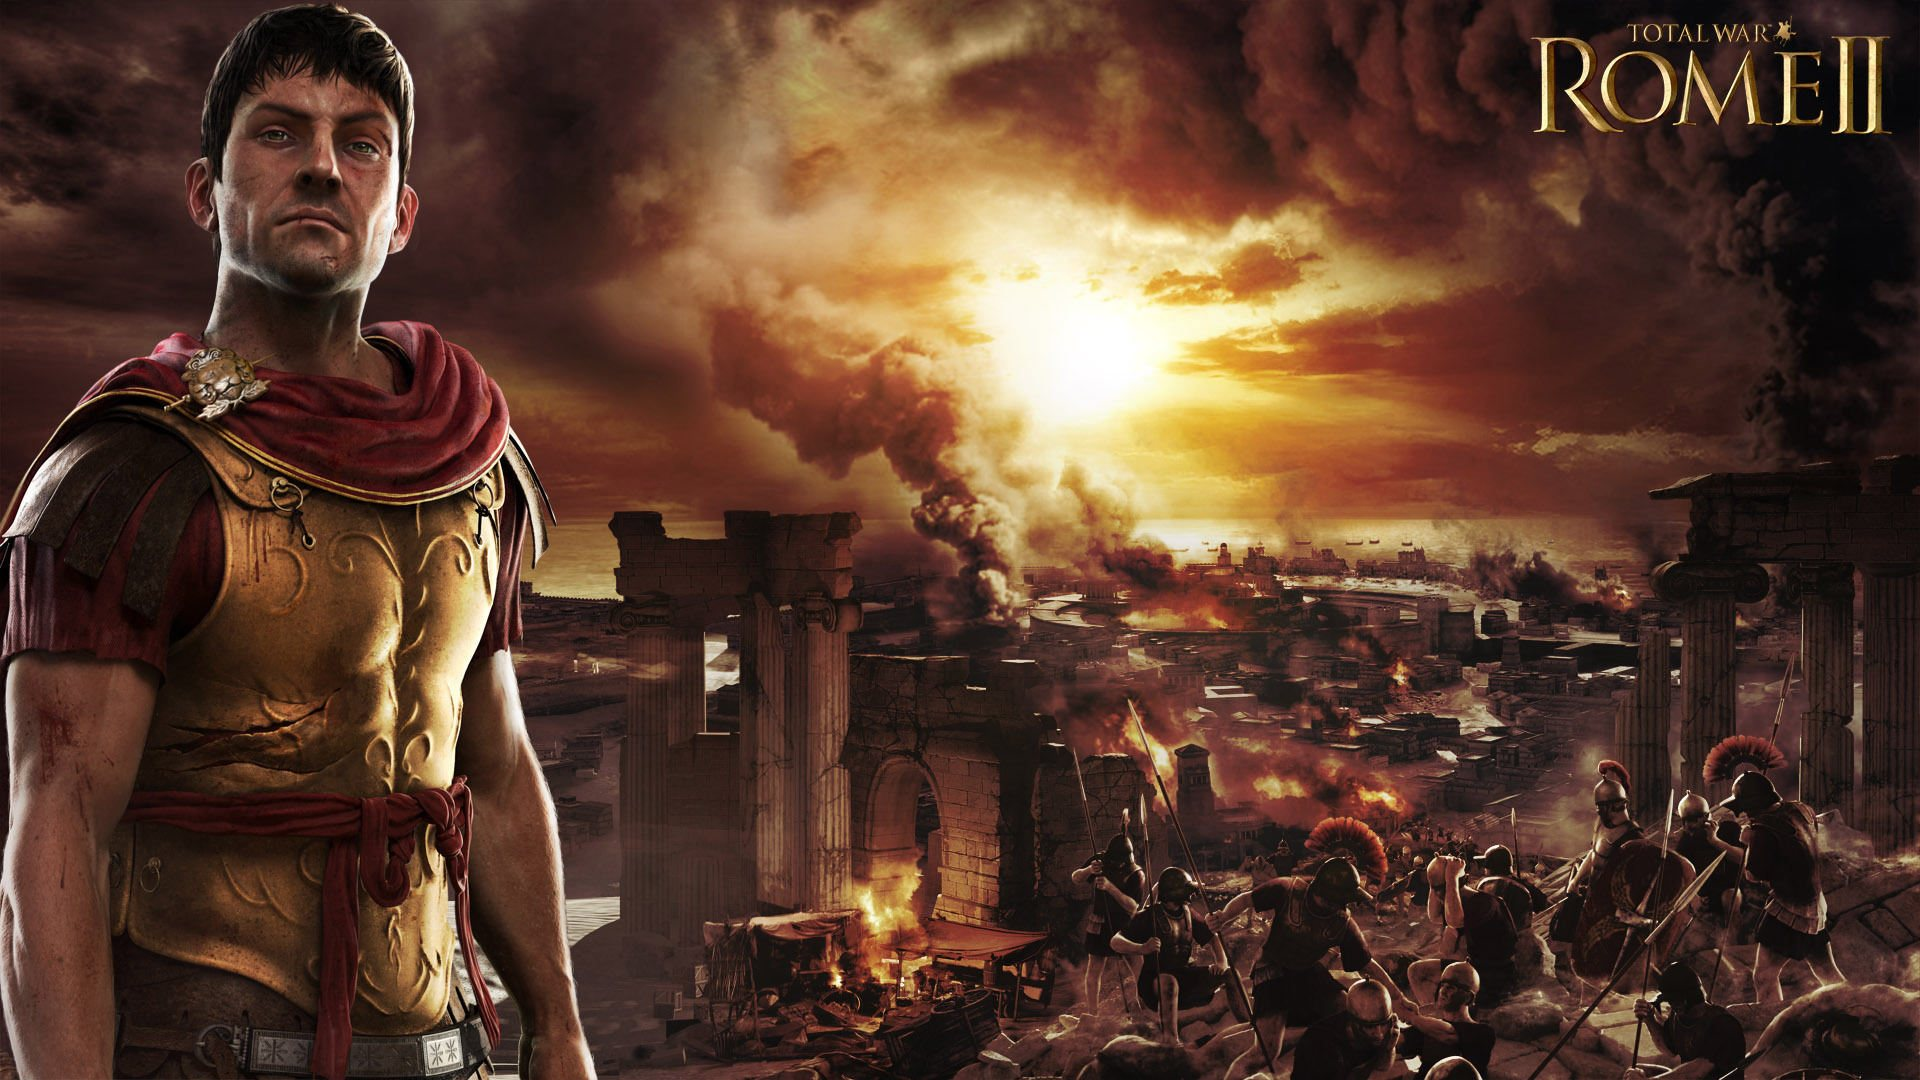 Total War Rome 2 desktop wallpaper 62 of 388 Video Game 1920x1080